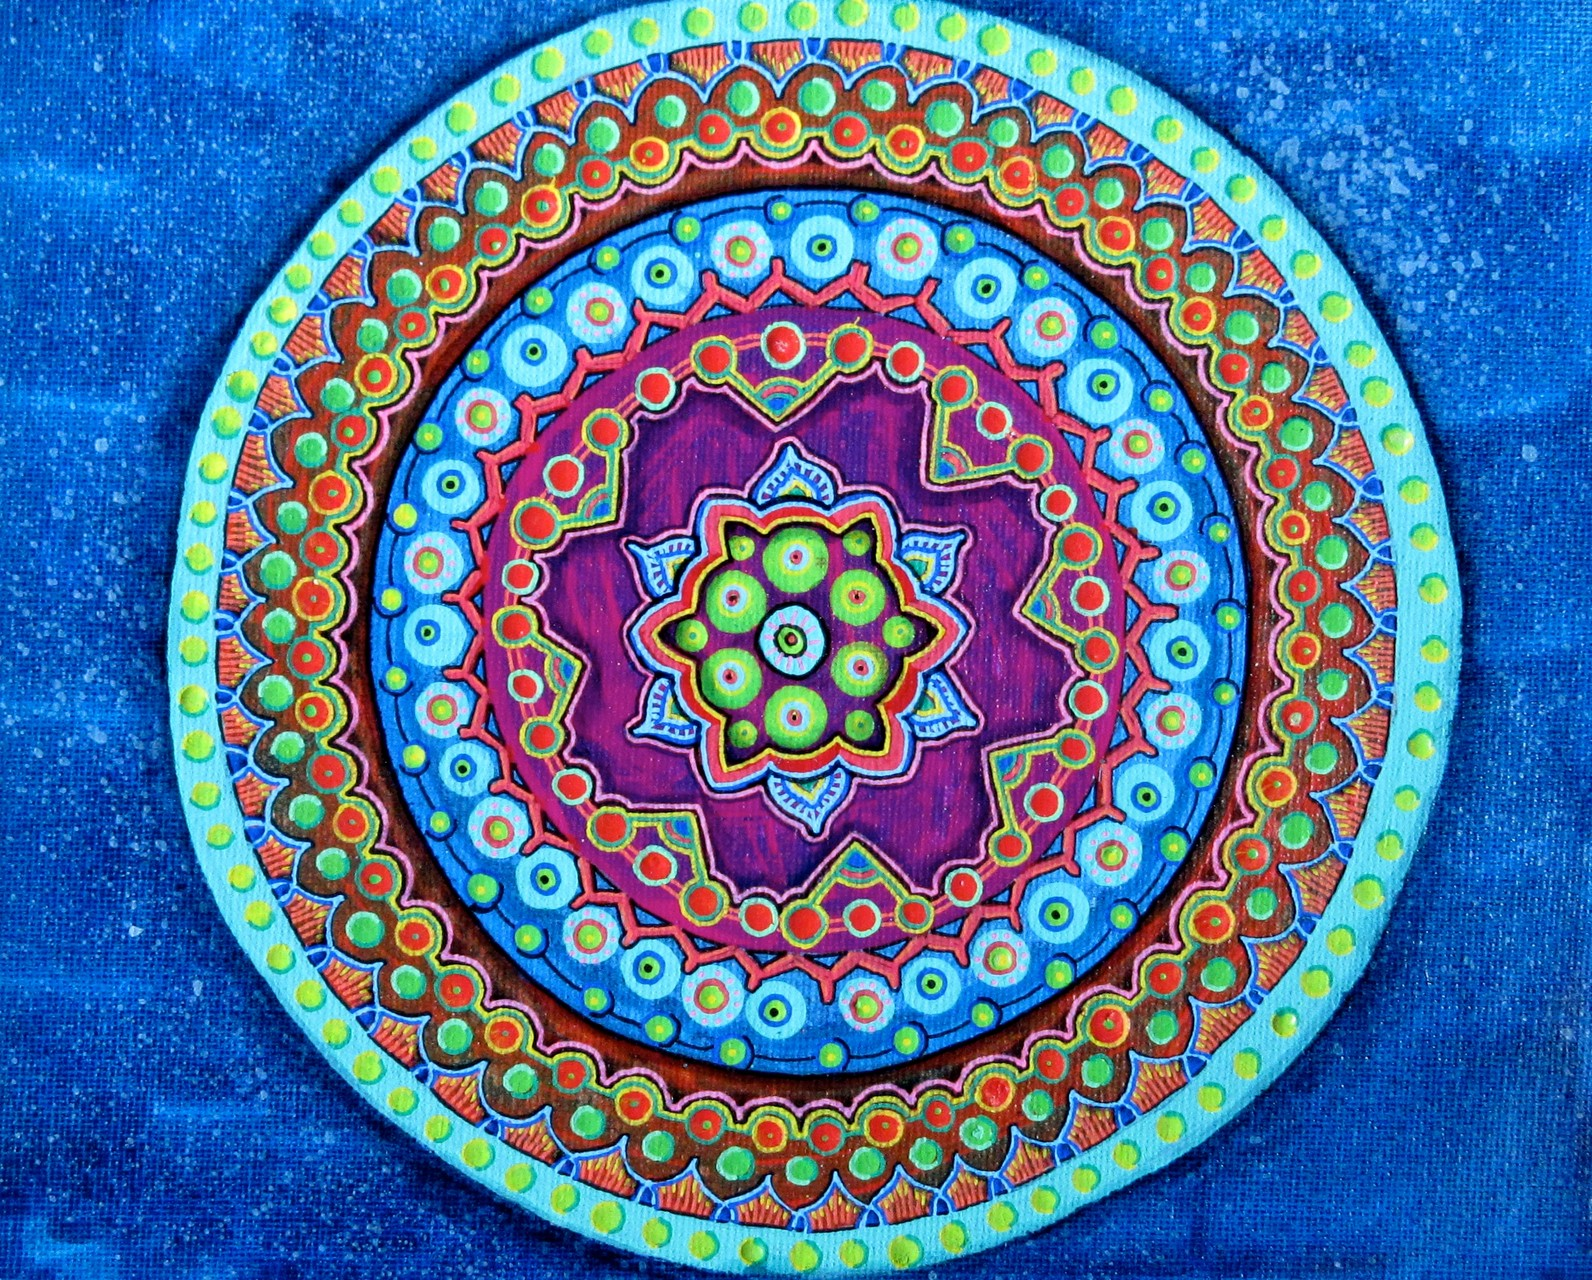 Dot Mandala, acrylic & oil on canvasboard 8x10, December 2015